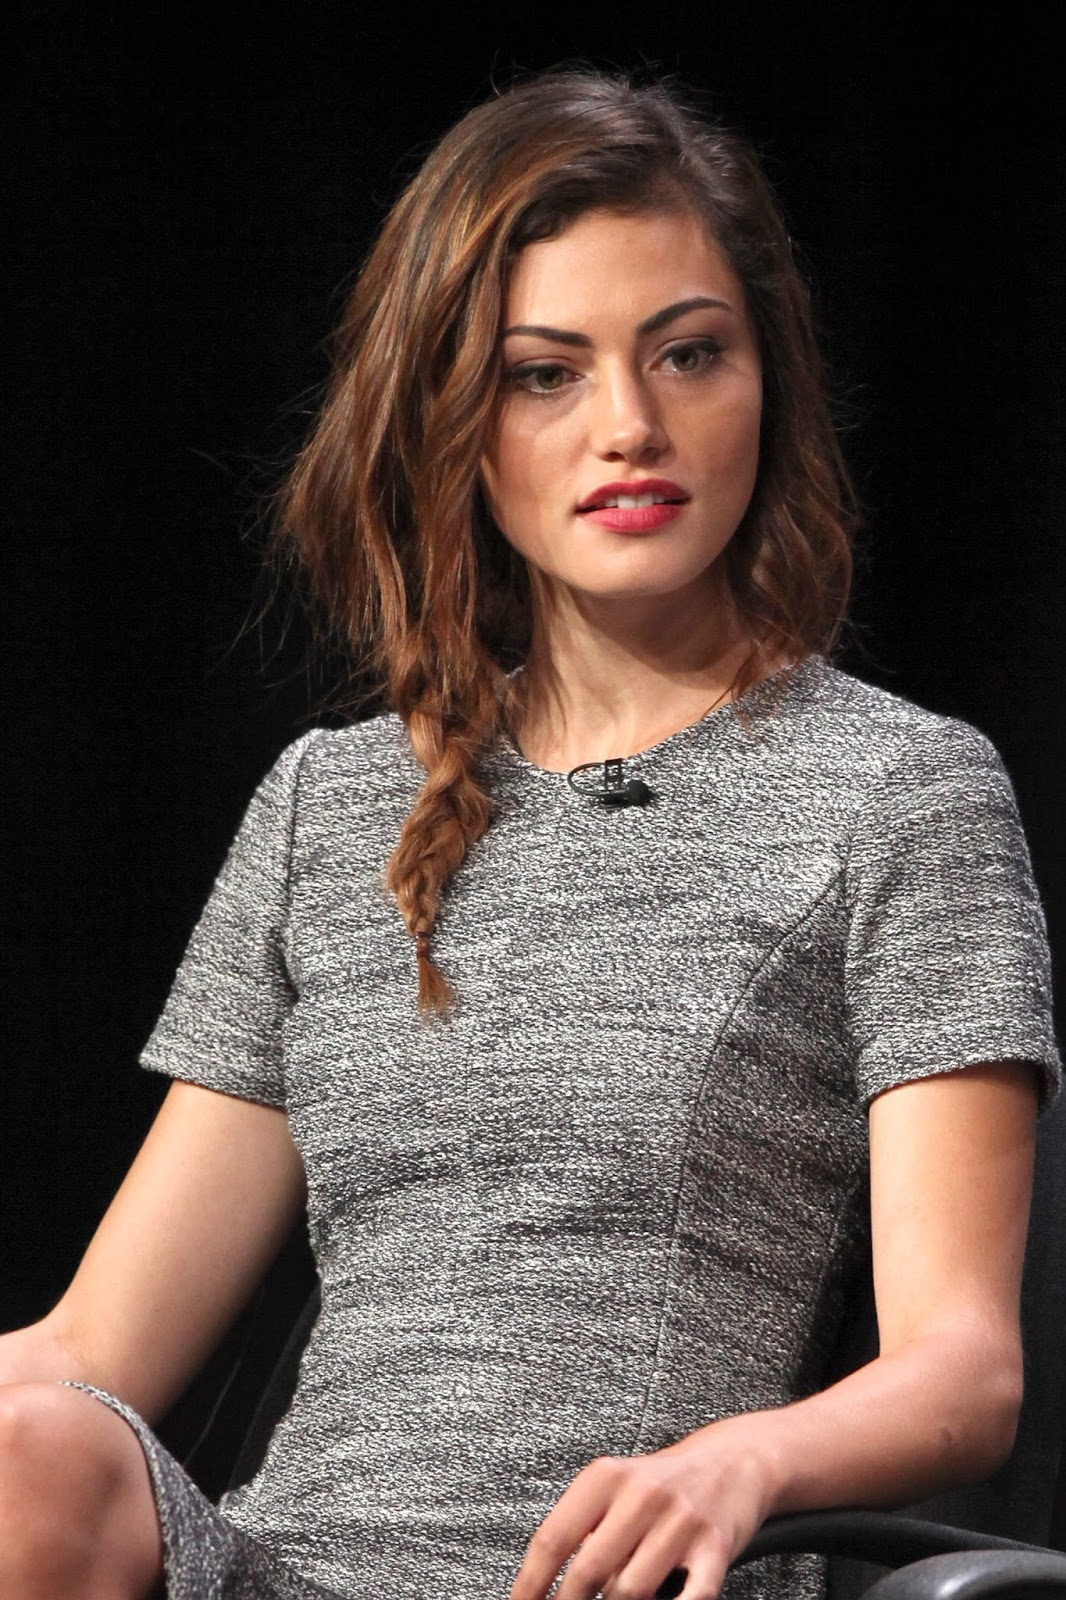 BEVERLY HILLS, CA - JULY 30:  Actress Phoebe Tonkin of the TV show